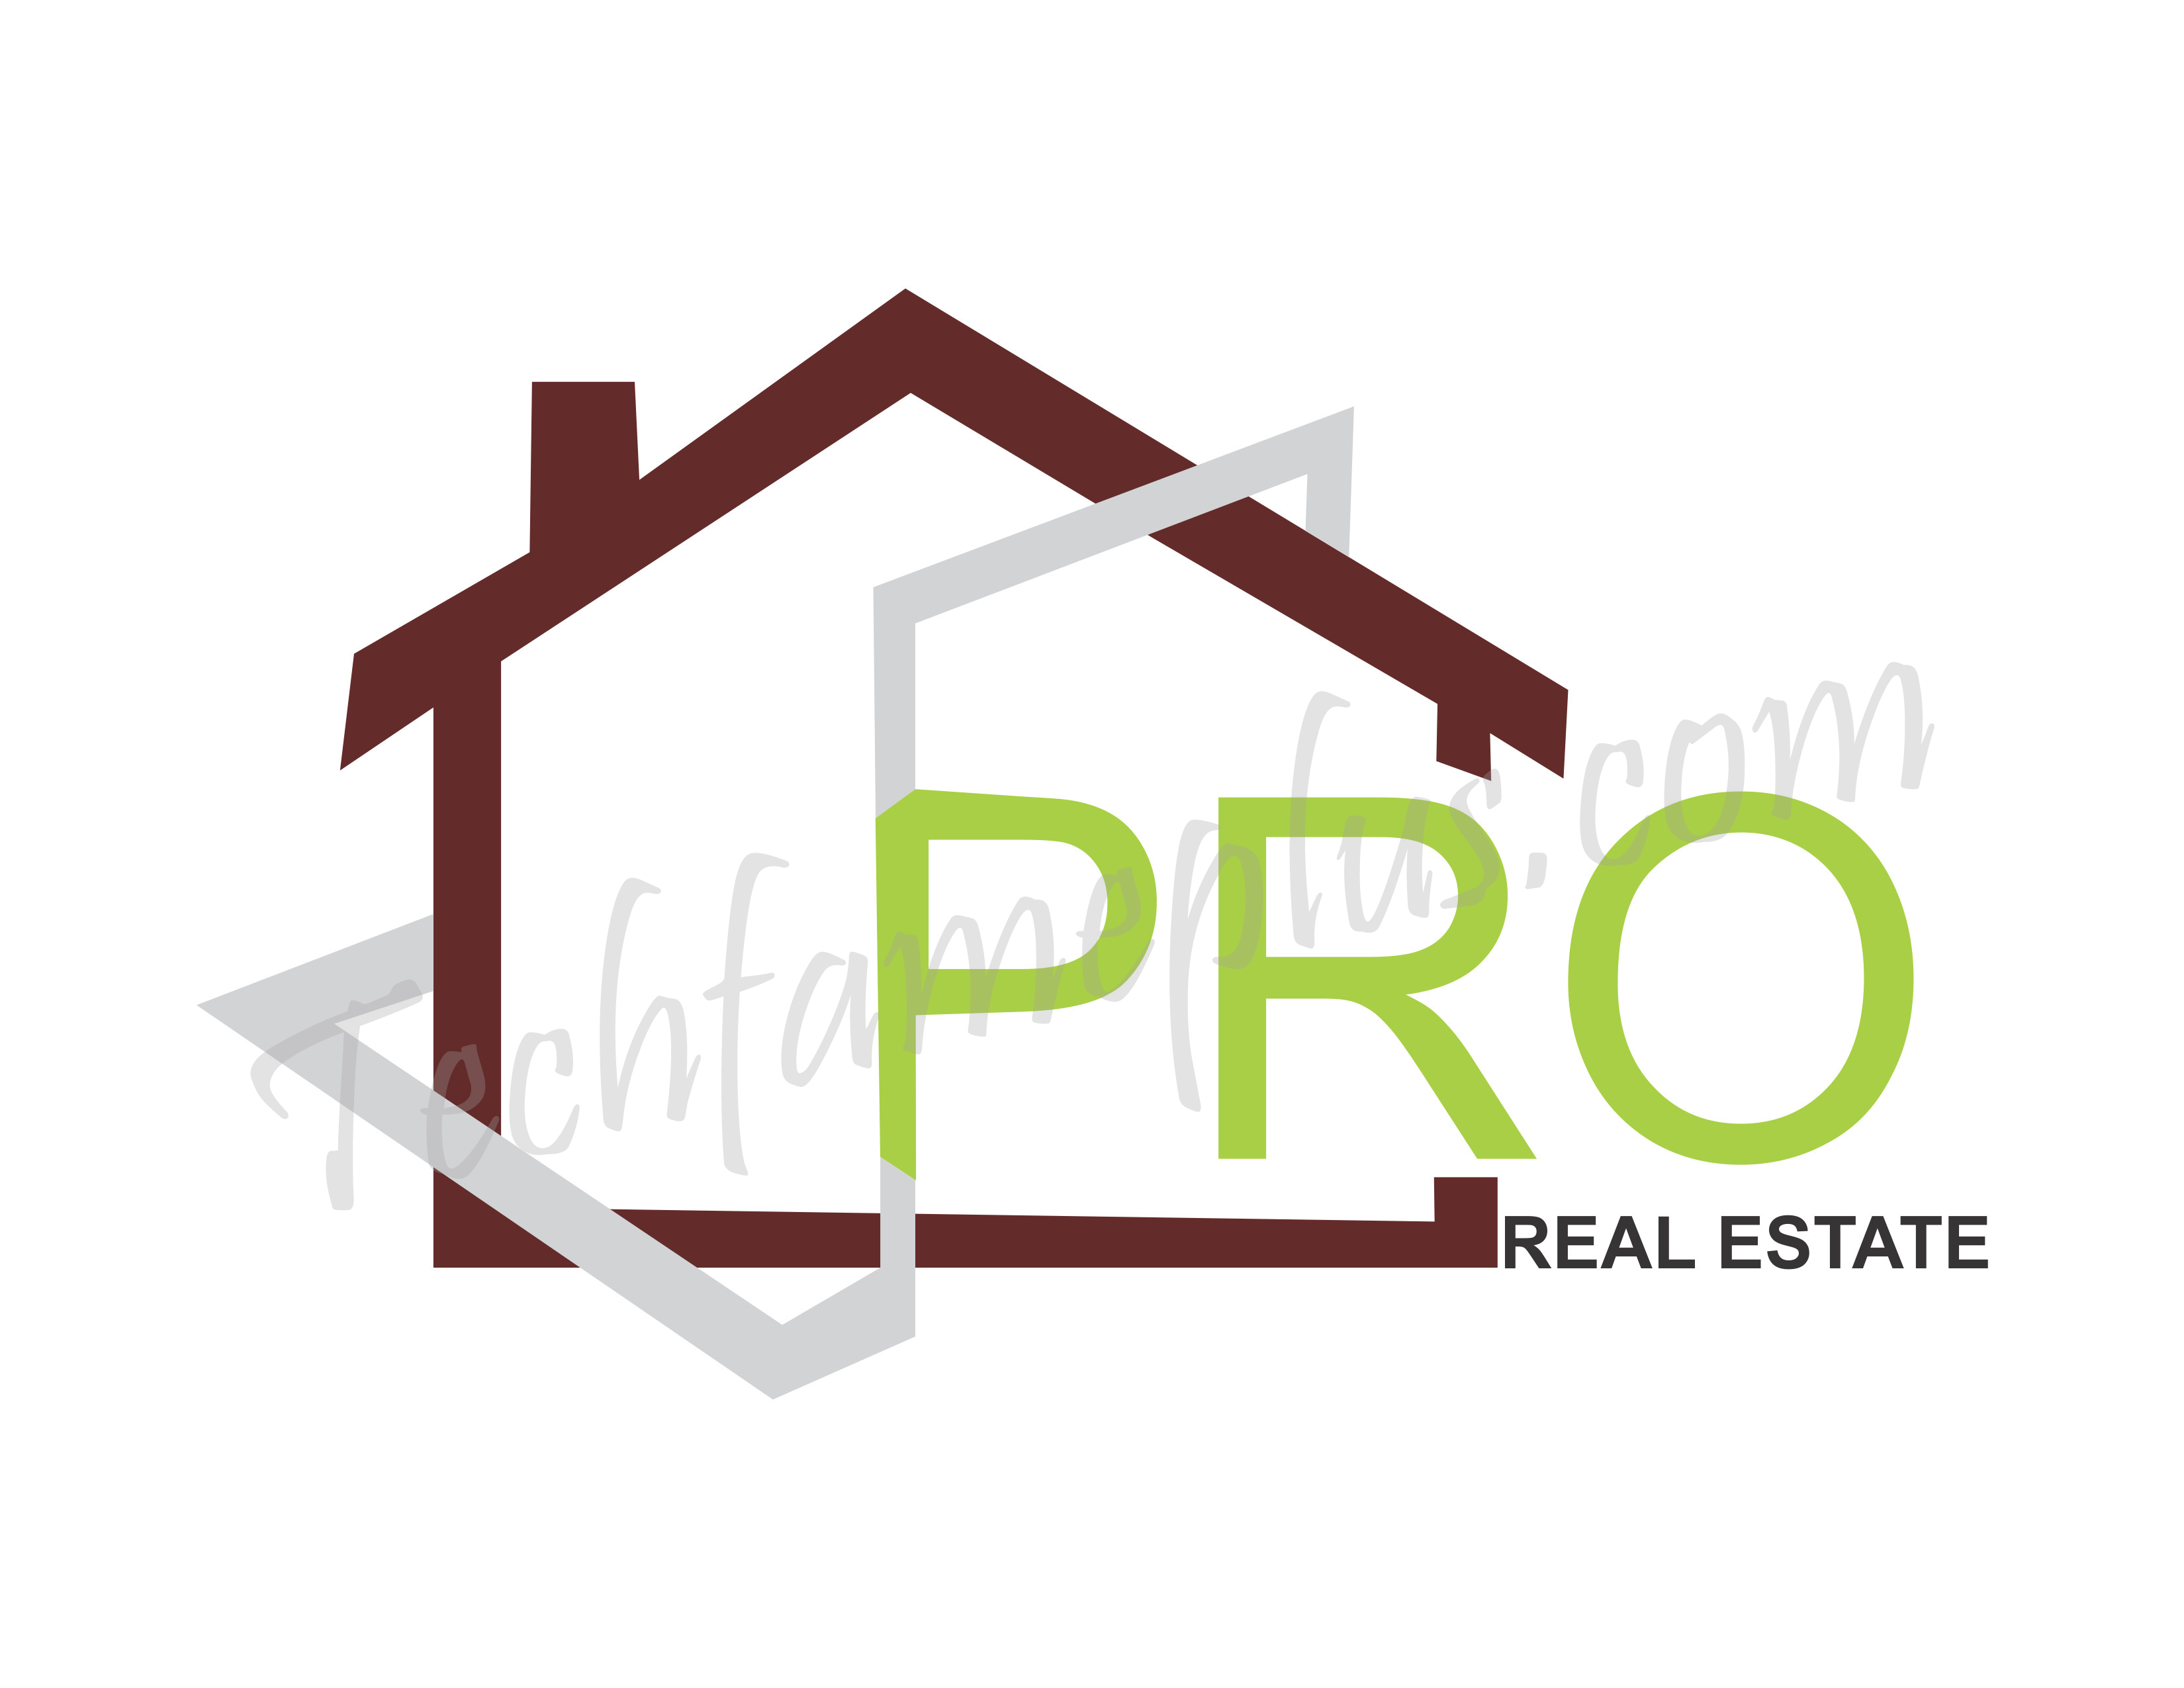 Top 11 Real Estate Logo With CDR File